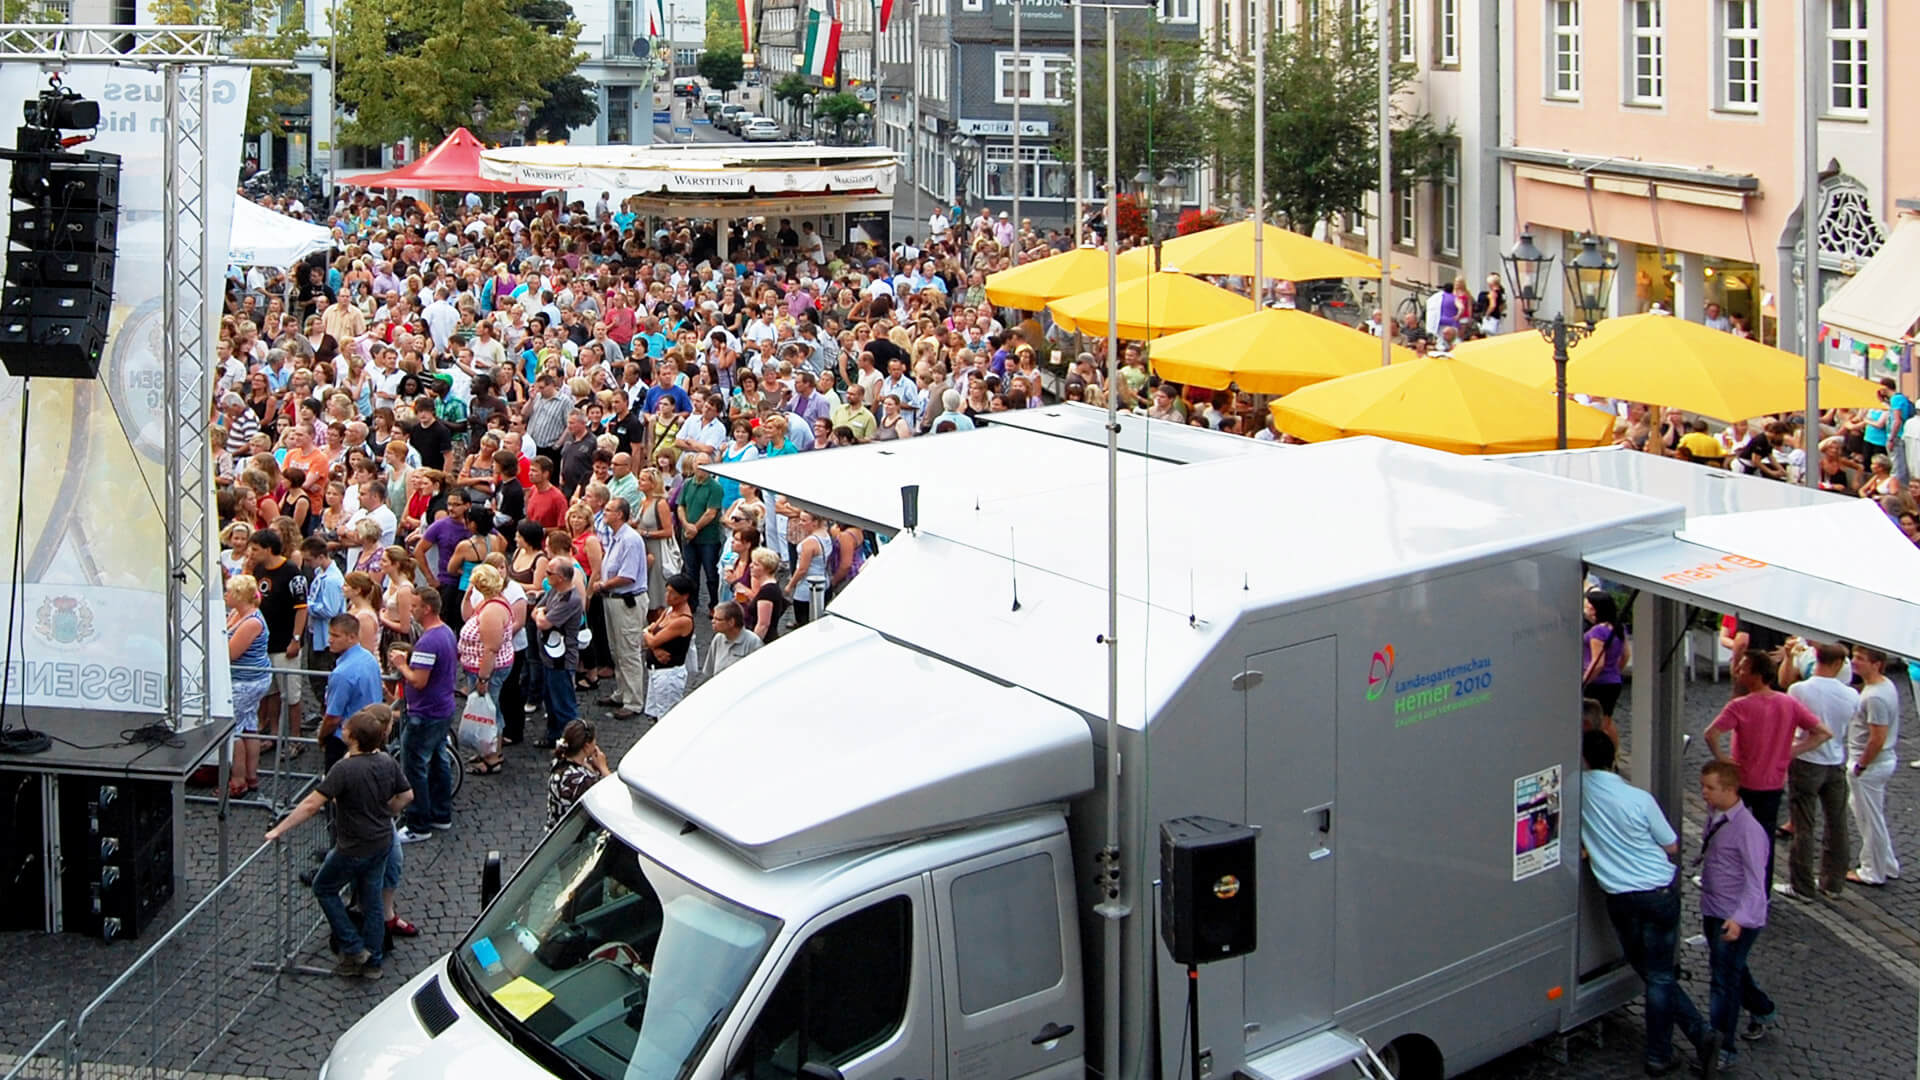 broadcast-mobil Infobus Roadshow Showtruck mobiles-Marketing